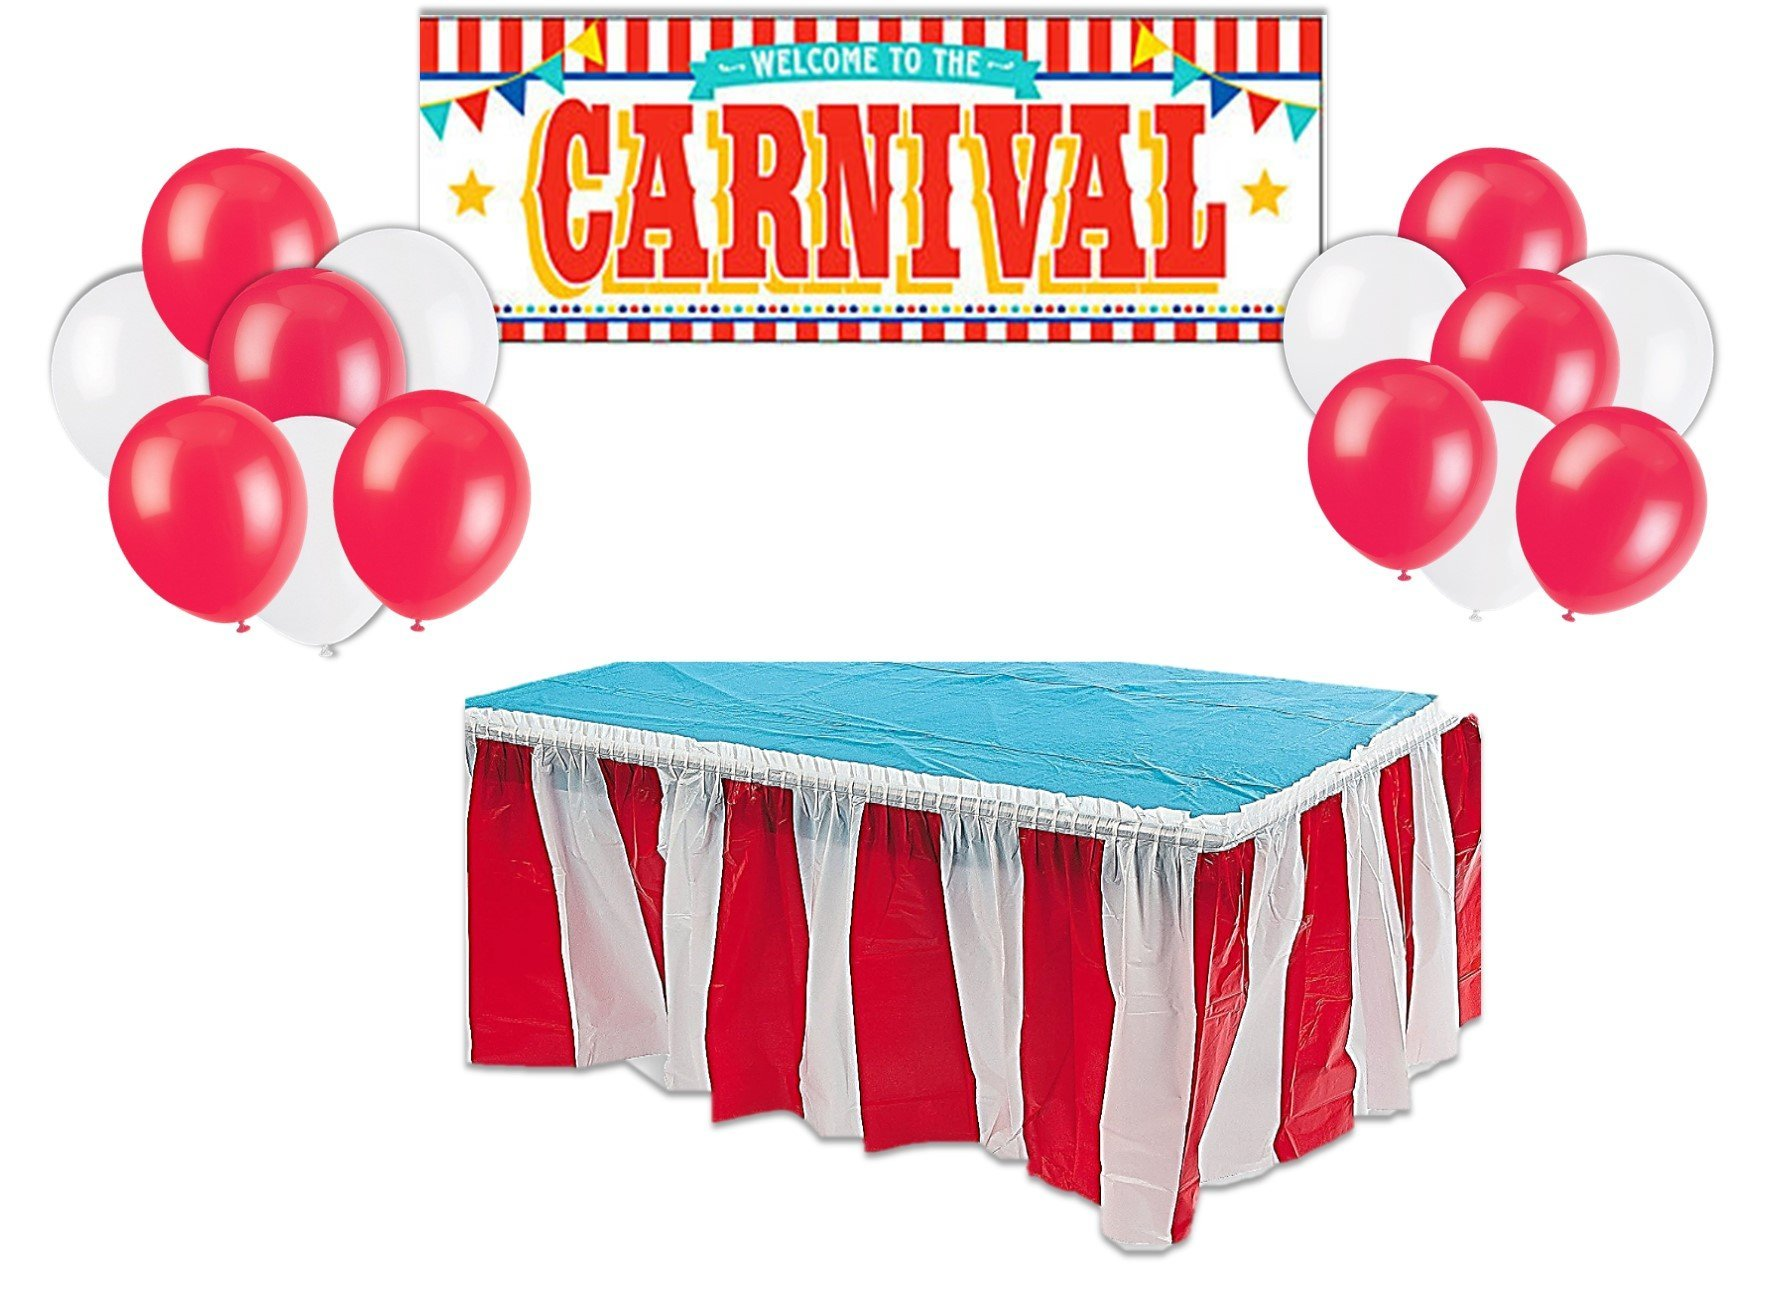 Carnival circus party supplies decorations - Red & White Striped Table Skirt,Plastic Carnival Banner With 10 Red balloons and 10 white balloons